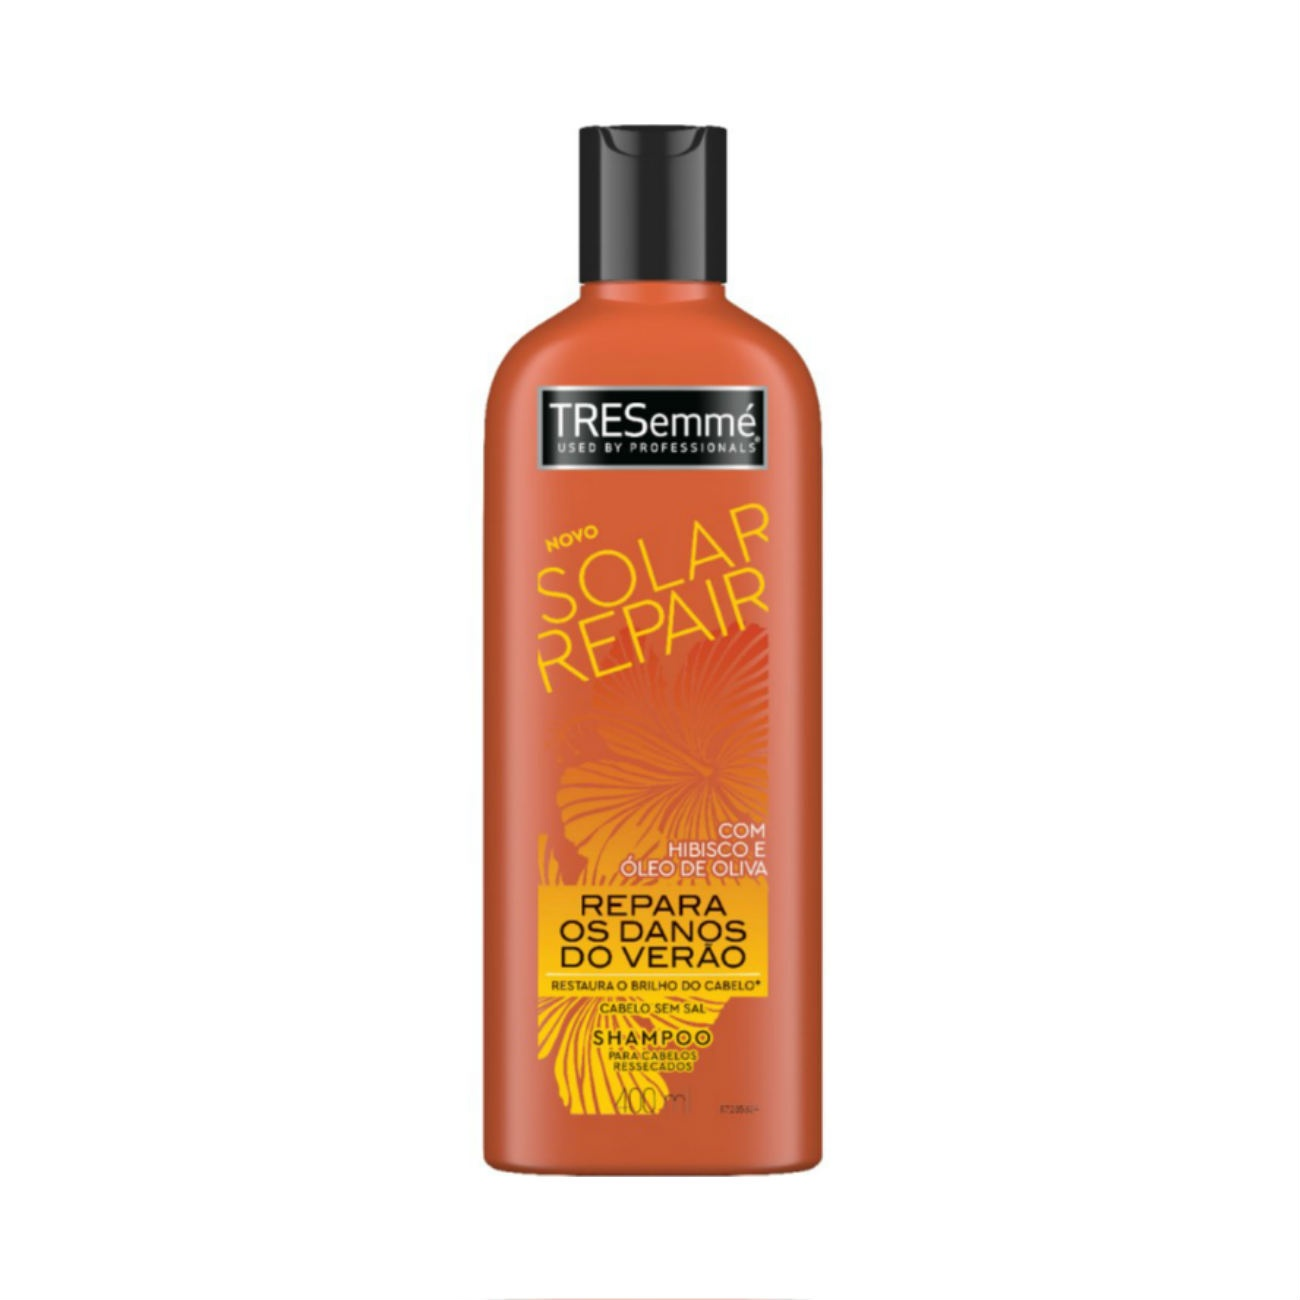 TRESemm� Shampoo Solar Repair 400ml